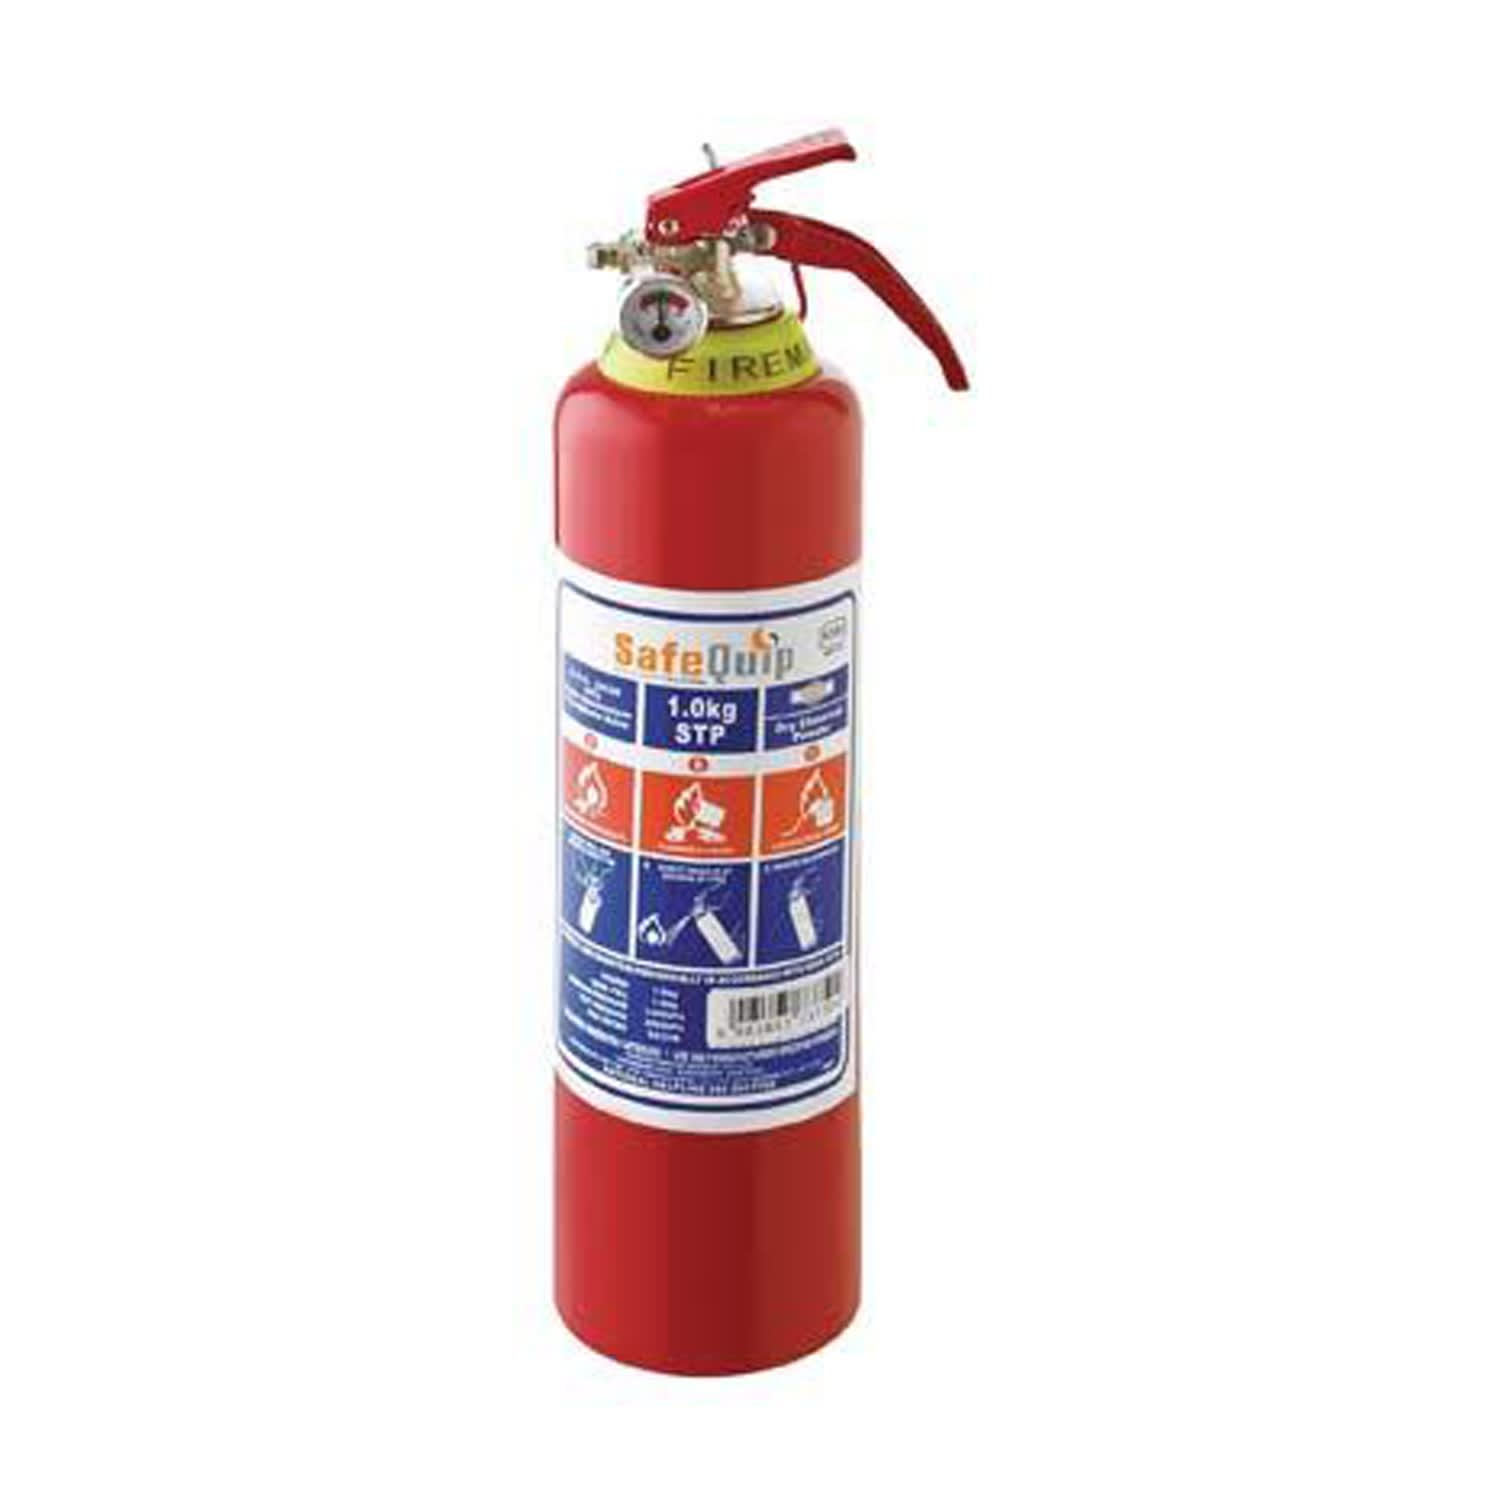 Safe Quip Fire Extinguisher 1Kg